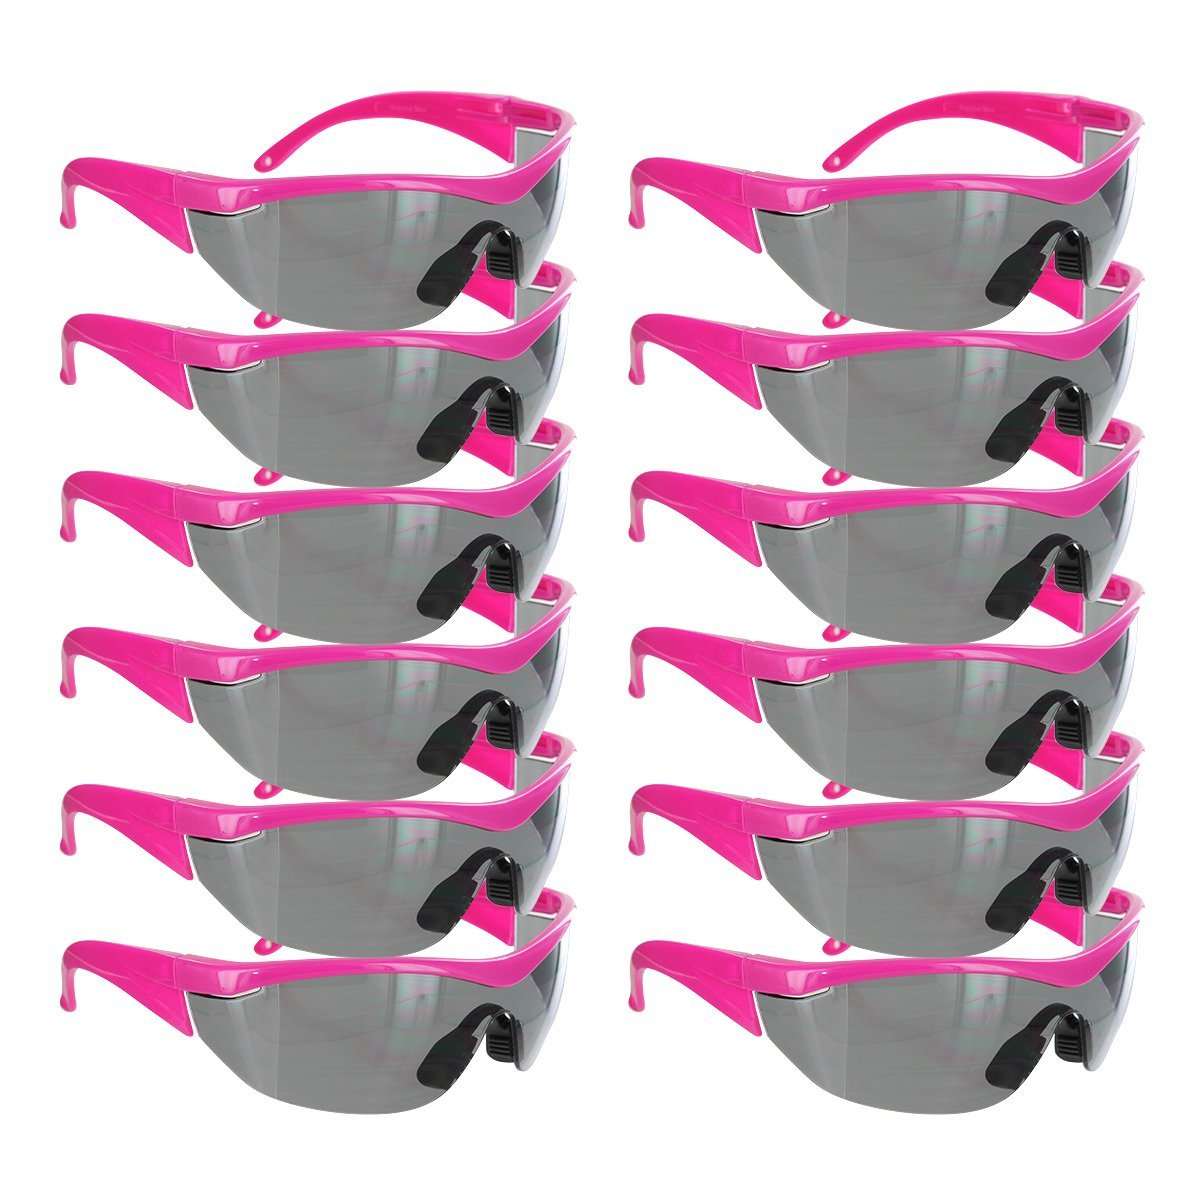 Safety Girl Navigator Safety Glasses Pink Frame - 12 Pack (Gray) By SafetyGirl Ship from US